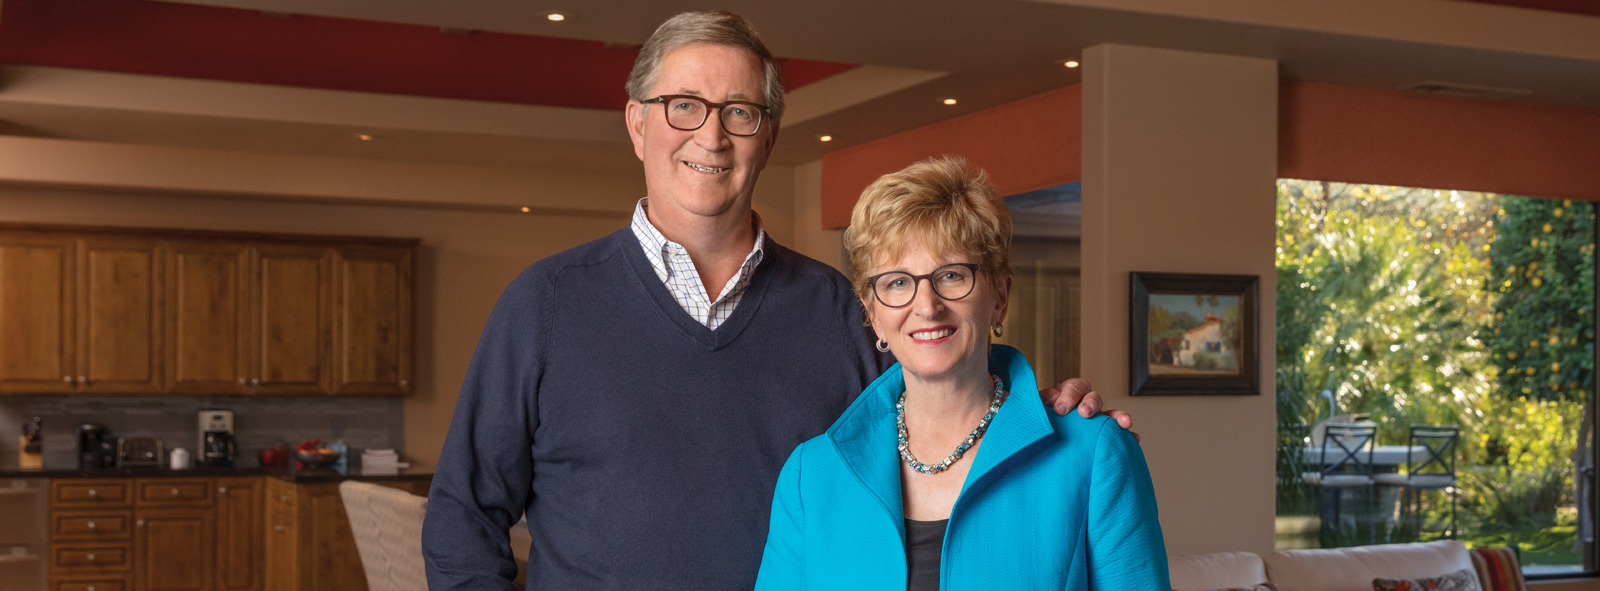 Image of First Republic Philanthropists / Volunteers client(s) Duane and Barbara McDougall